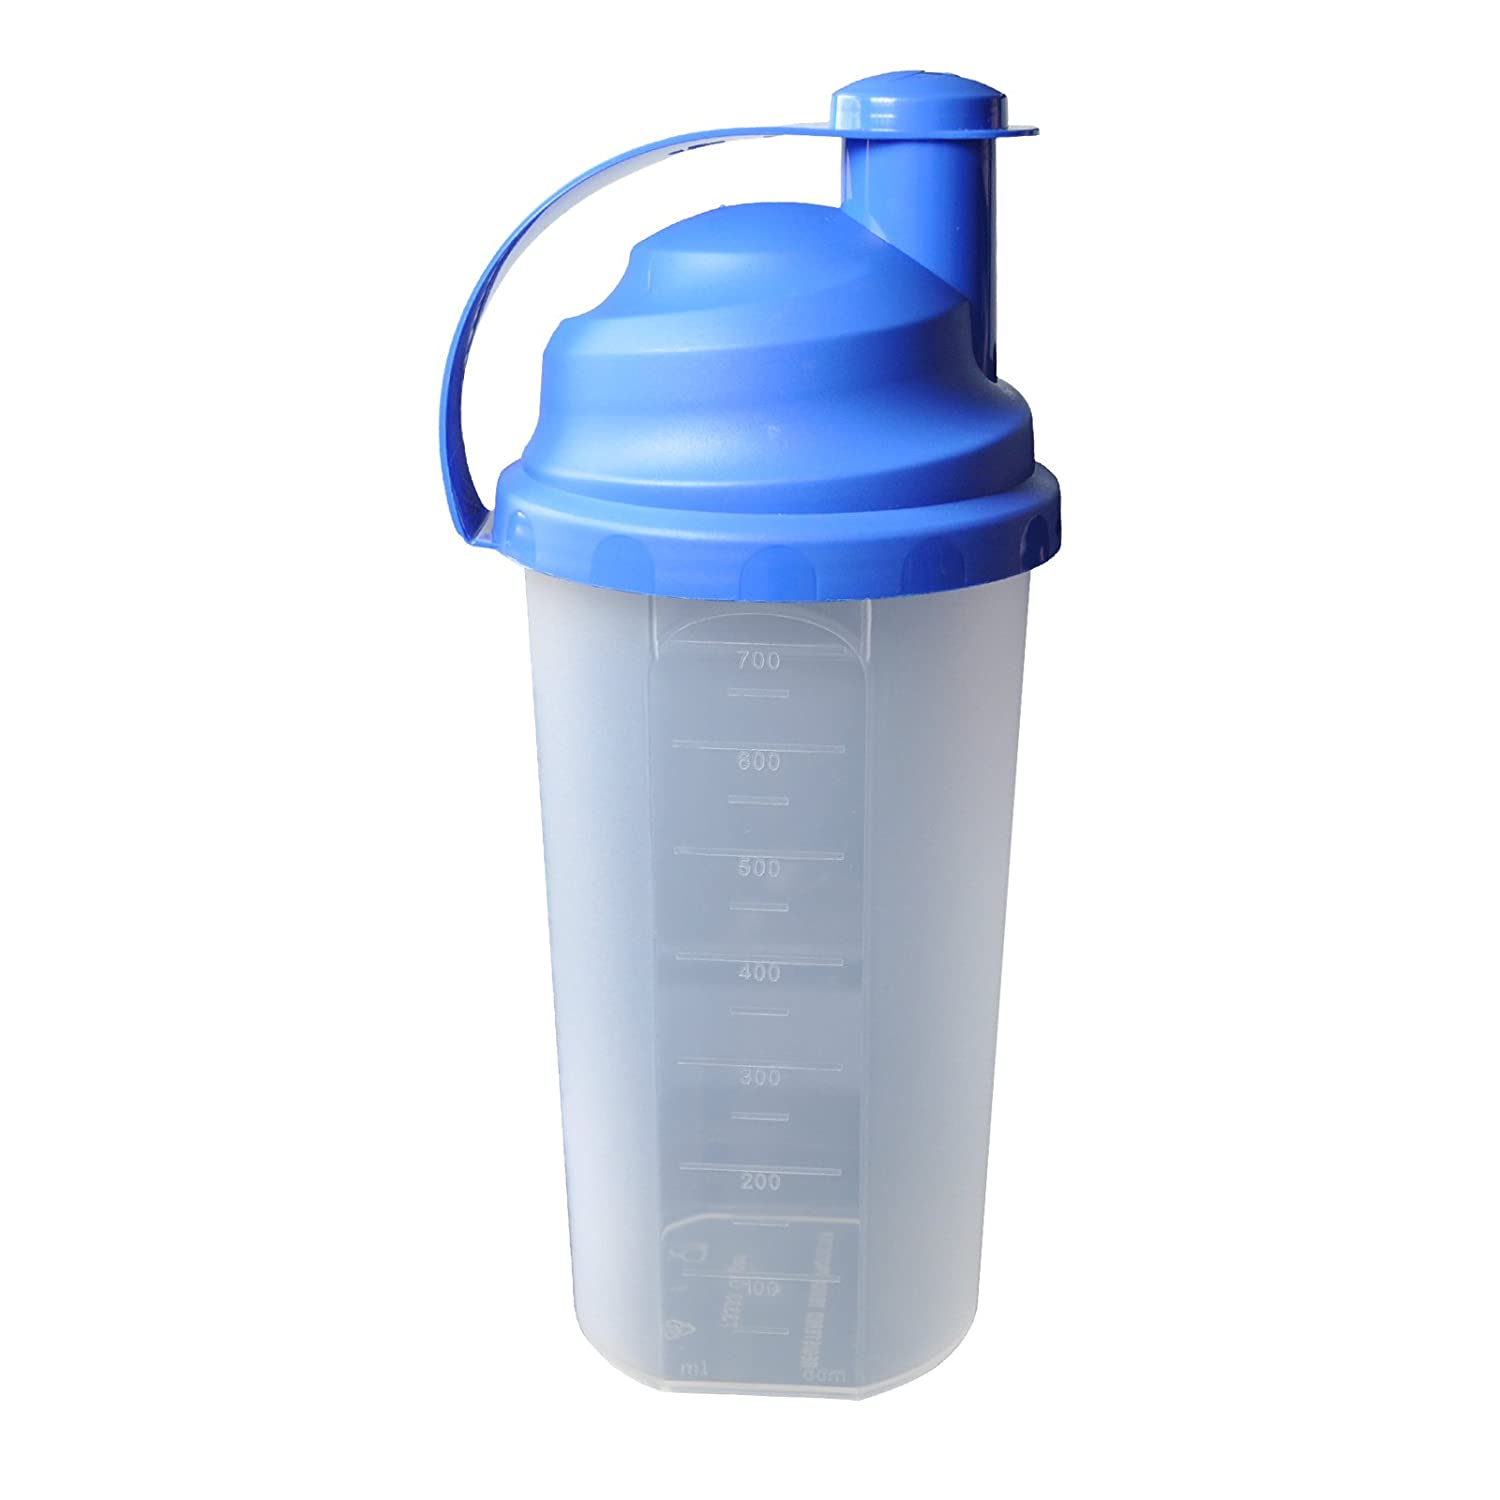 MyProtein - Proteinshaker Blender Bottle